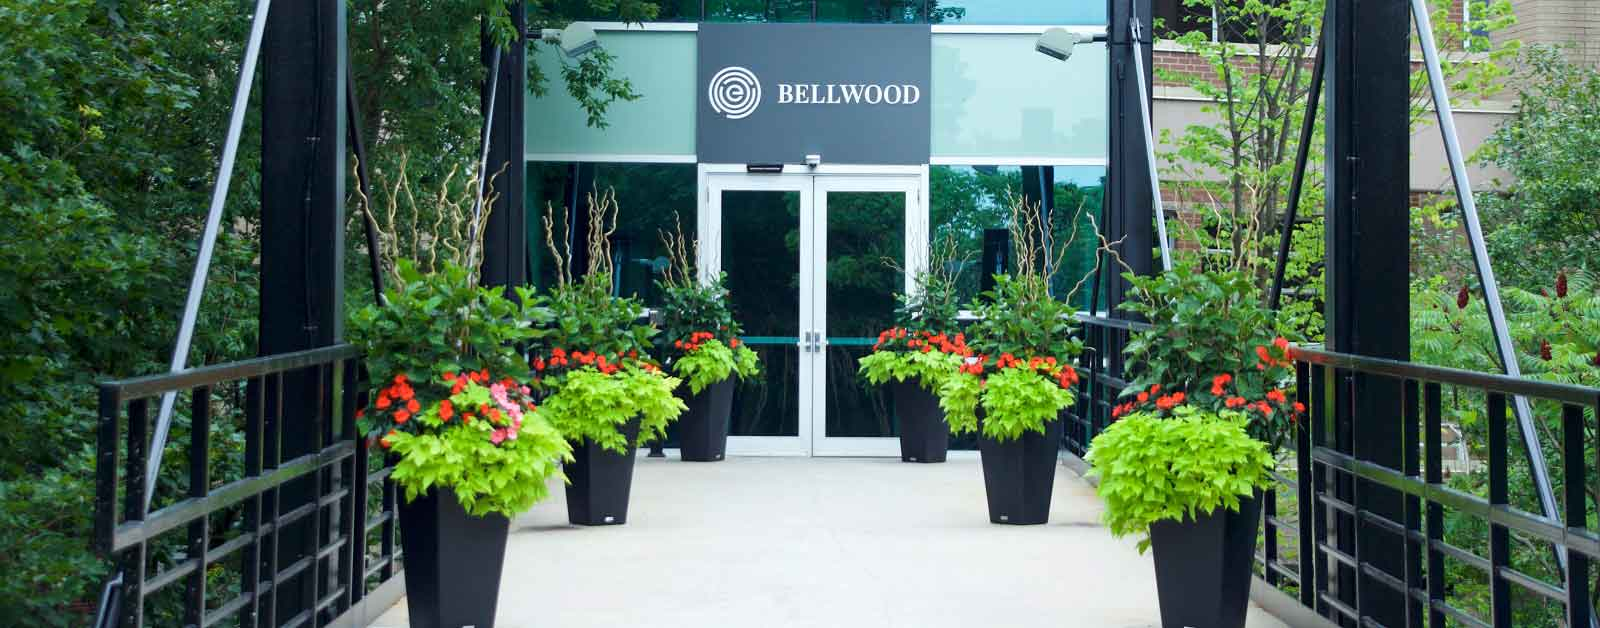 Bellwood Health Services Toronto Drug Addiction Treatment Center Facility